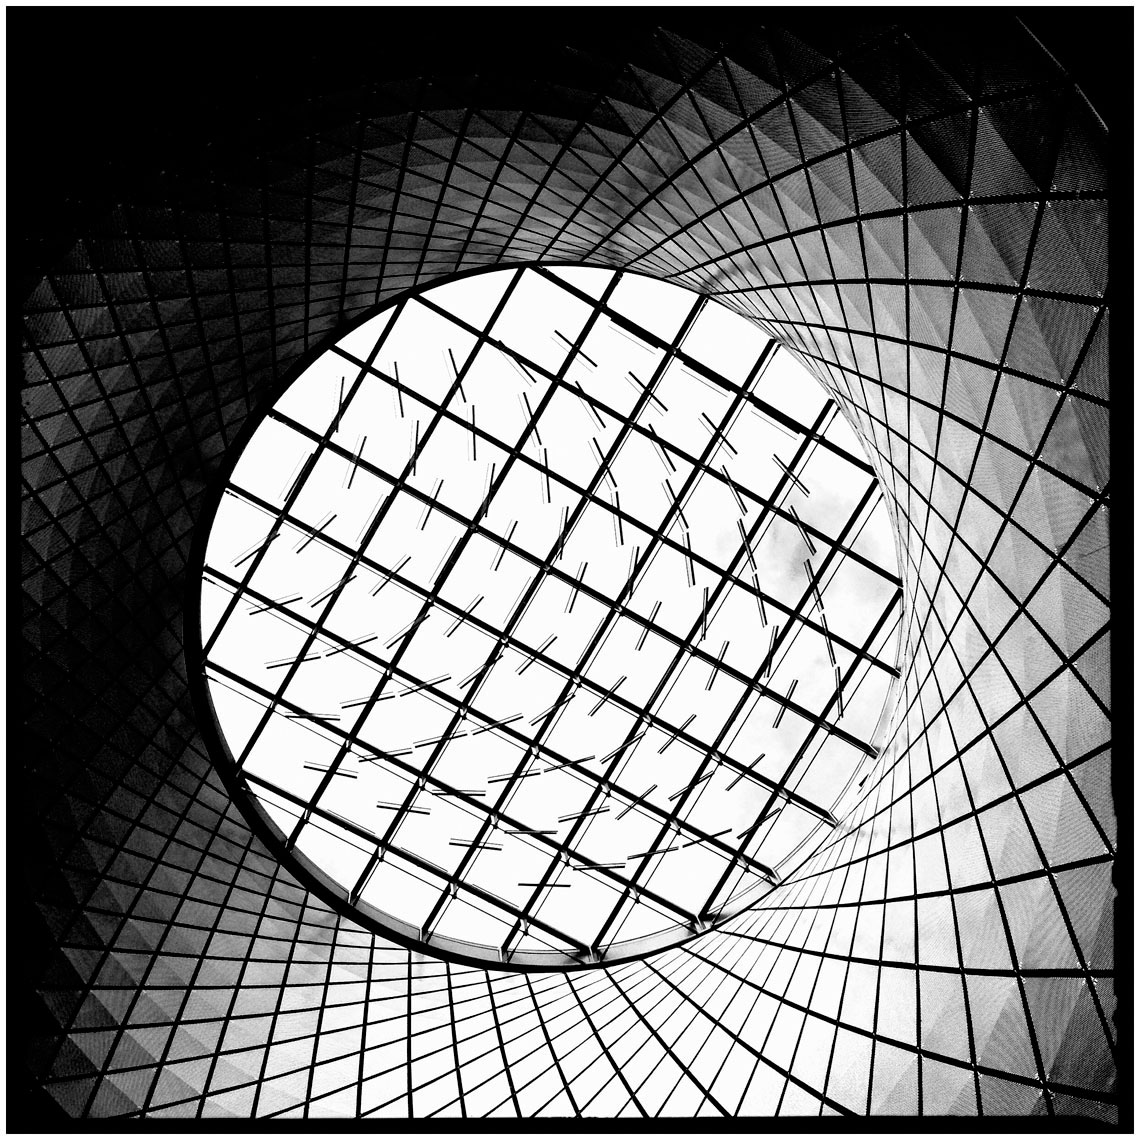 Grid SkyLight Fulton Street Subway NYC